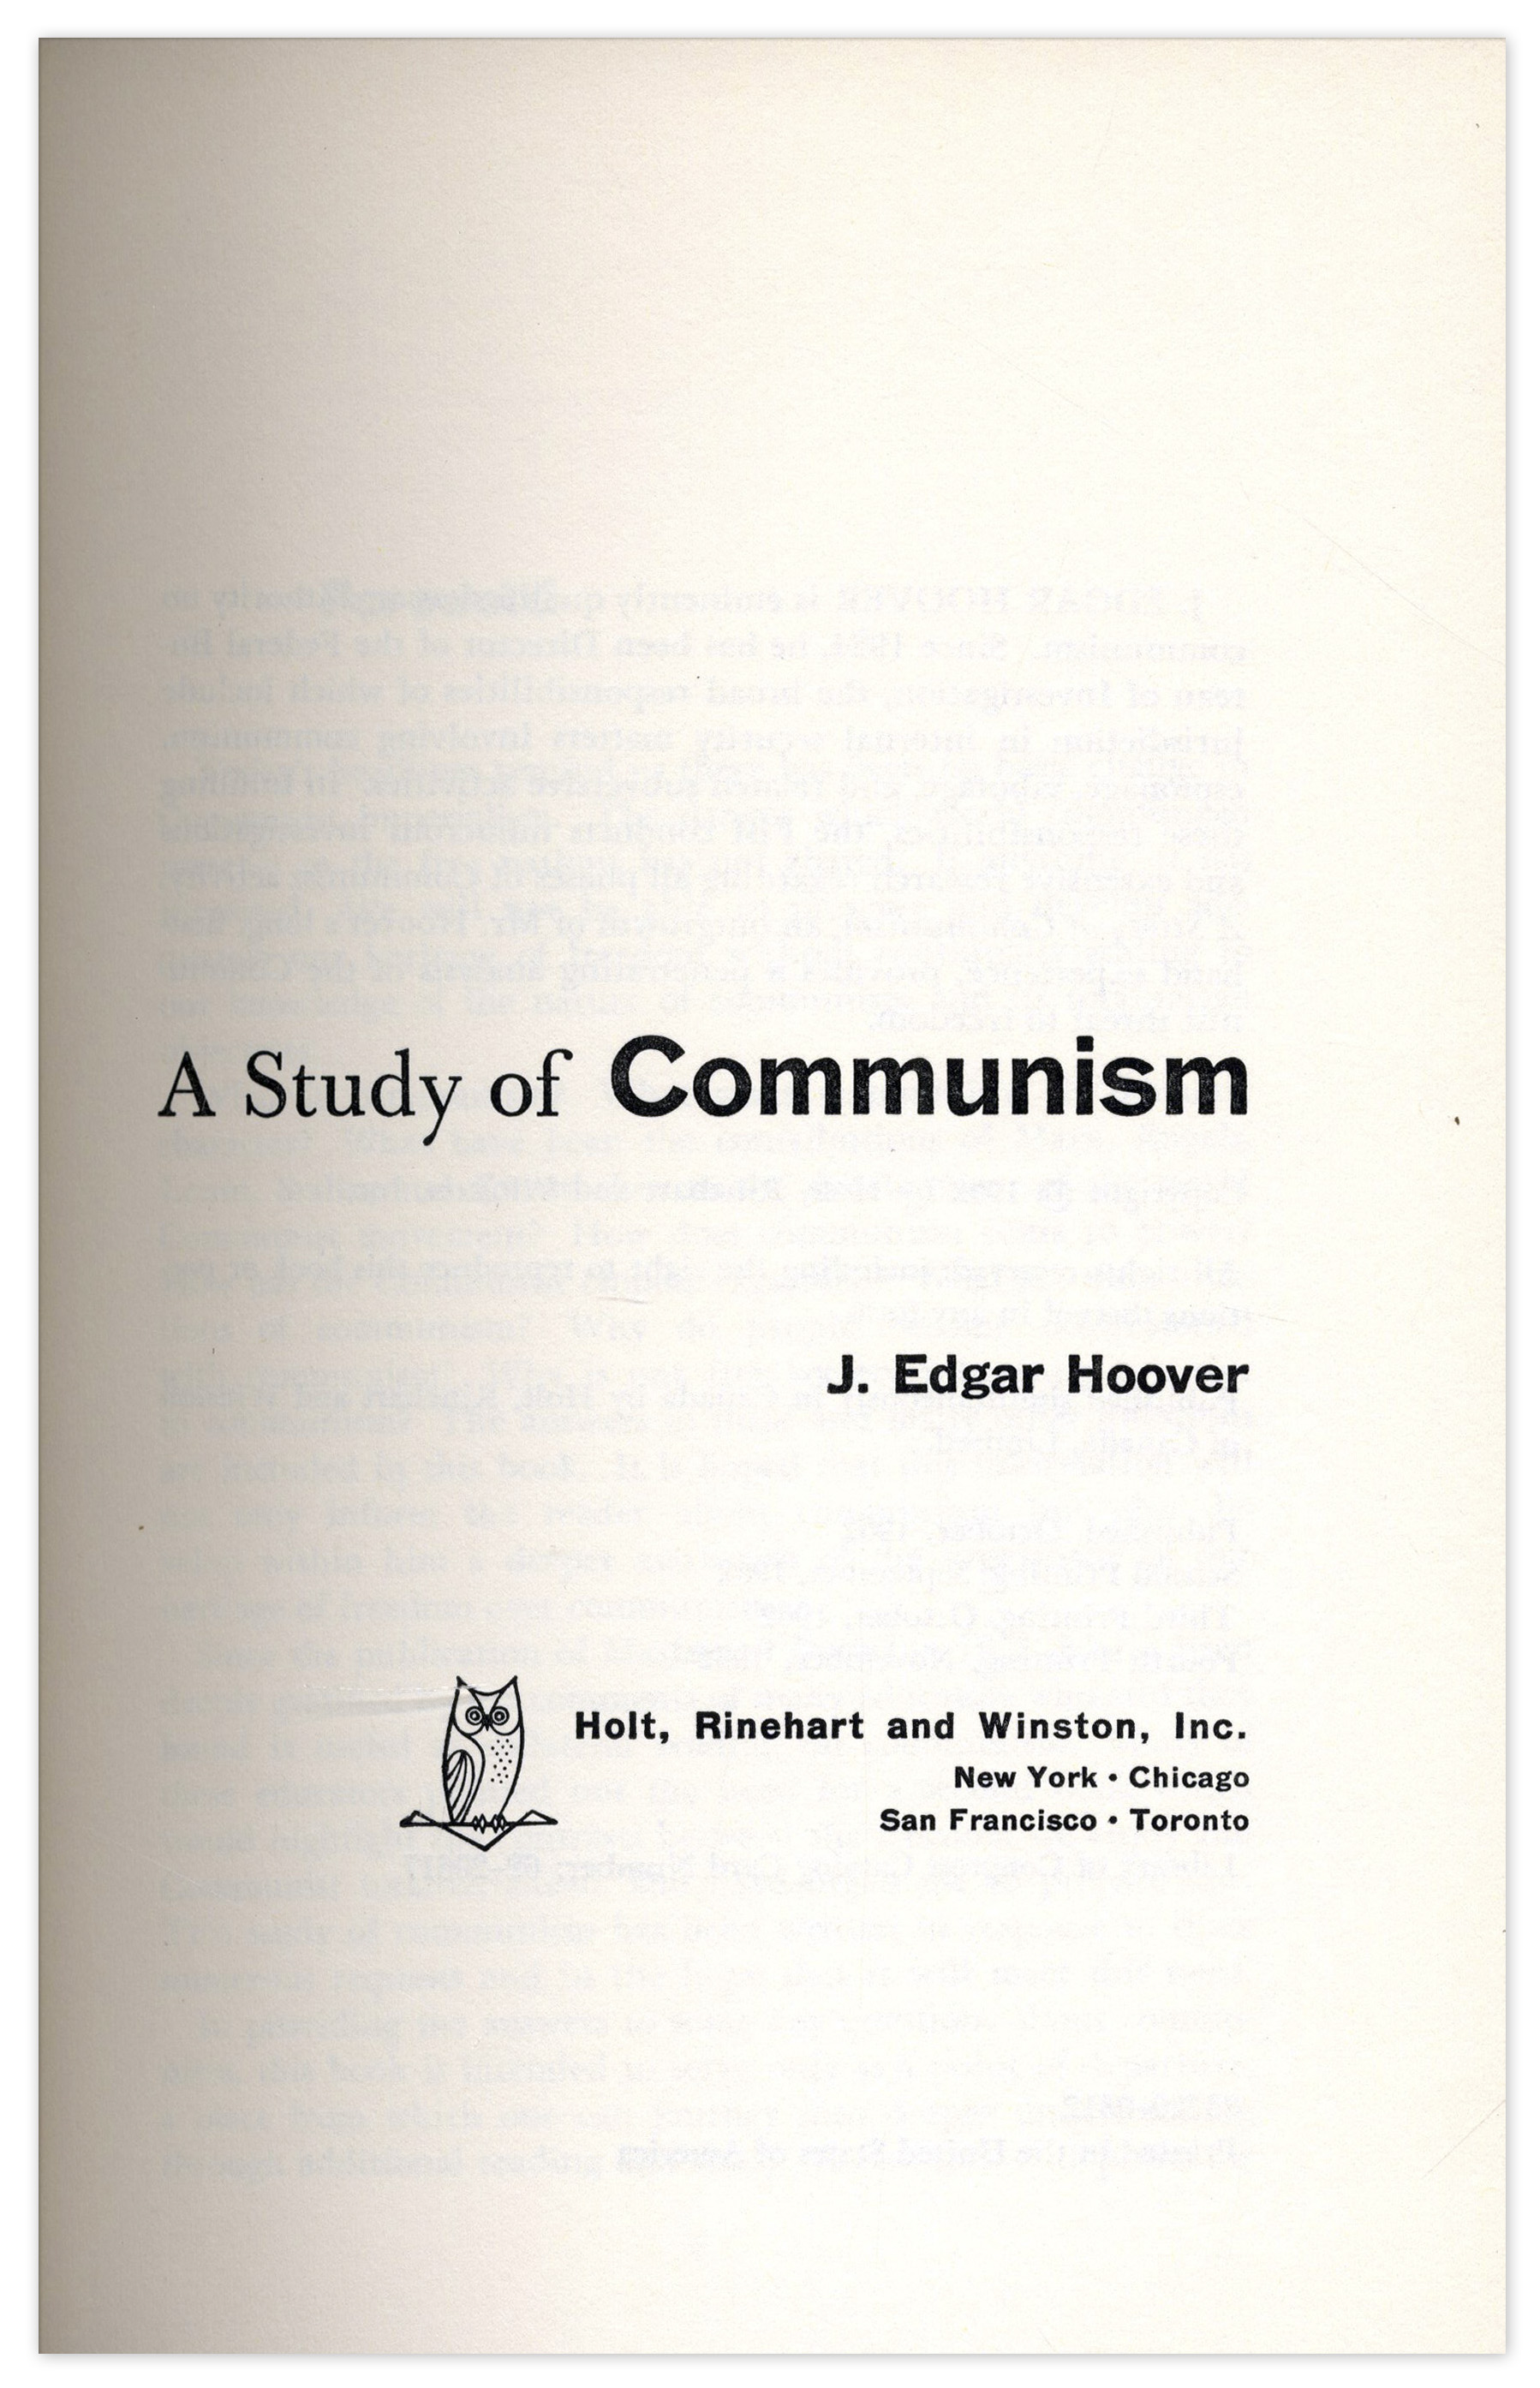 Communism is Not Dead essay | Get Access To Unique Paper